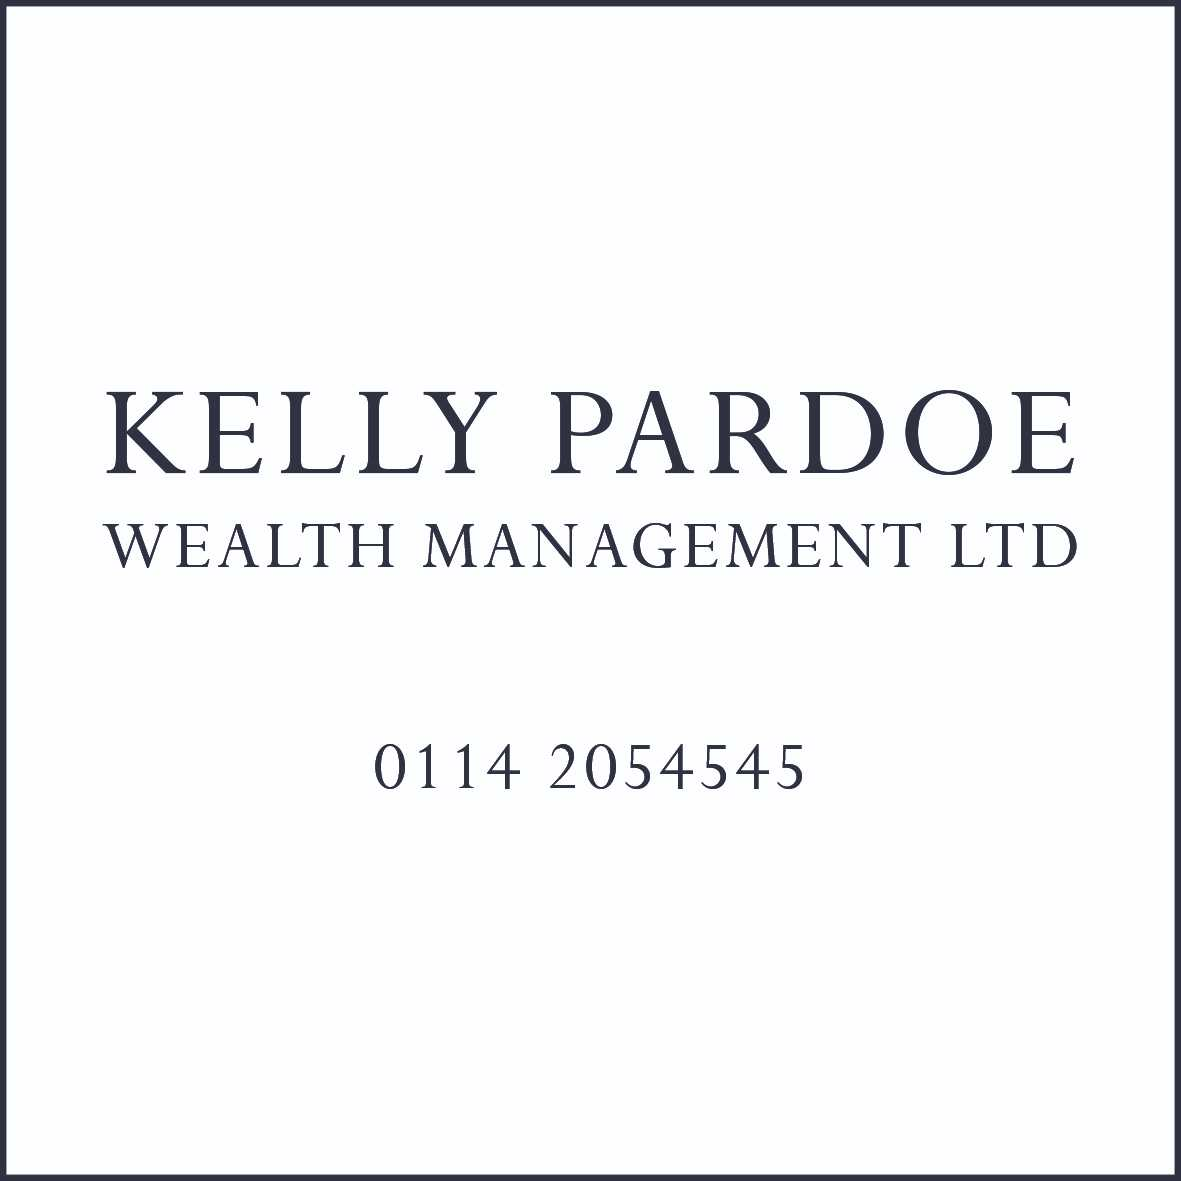 kelly pardoe logo.jpeg